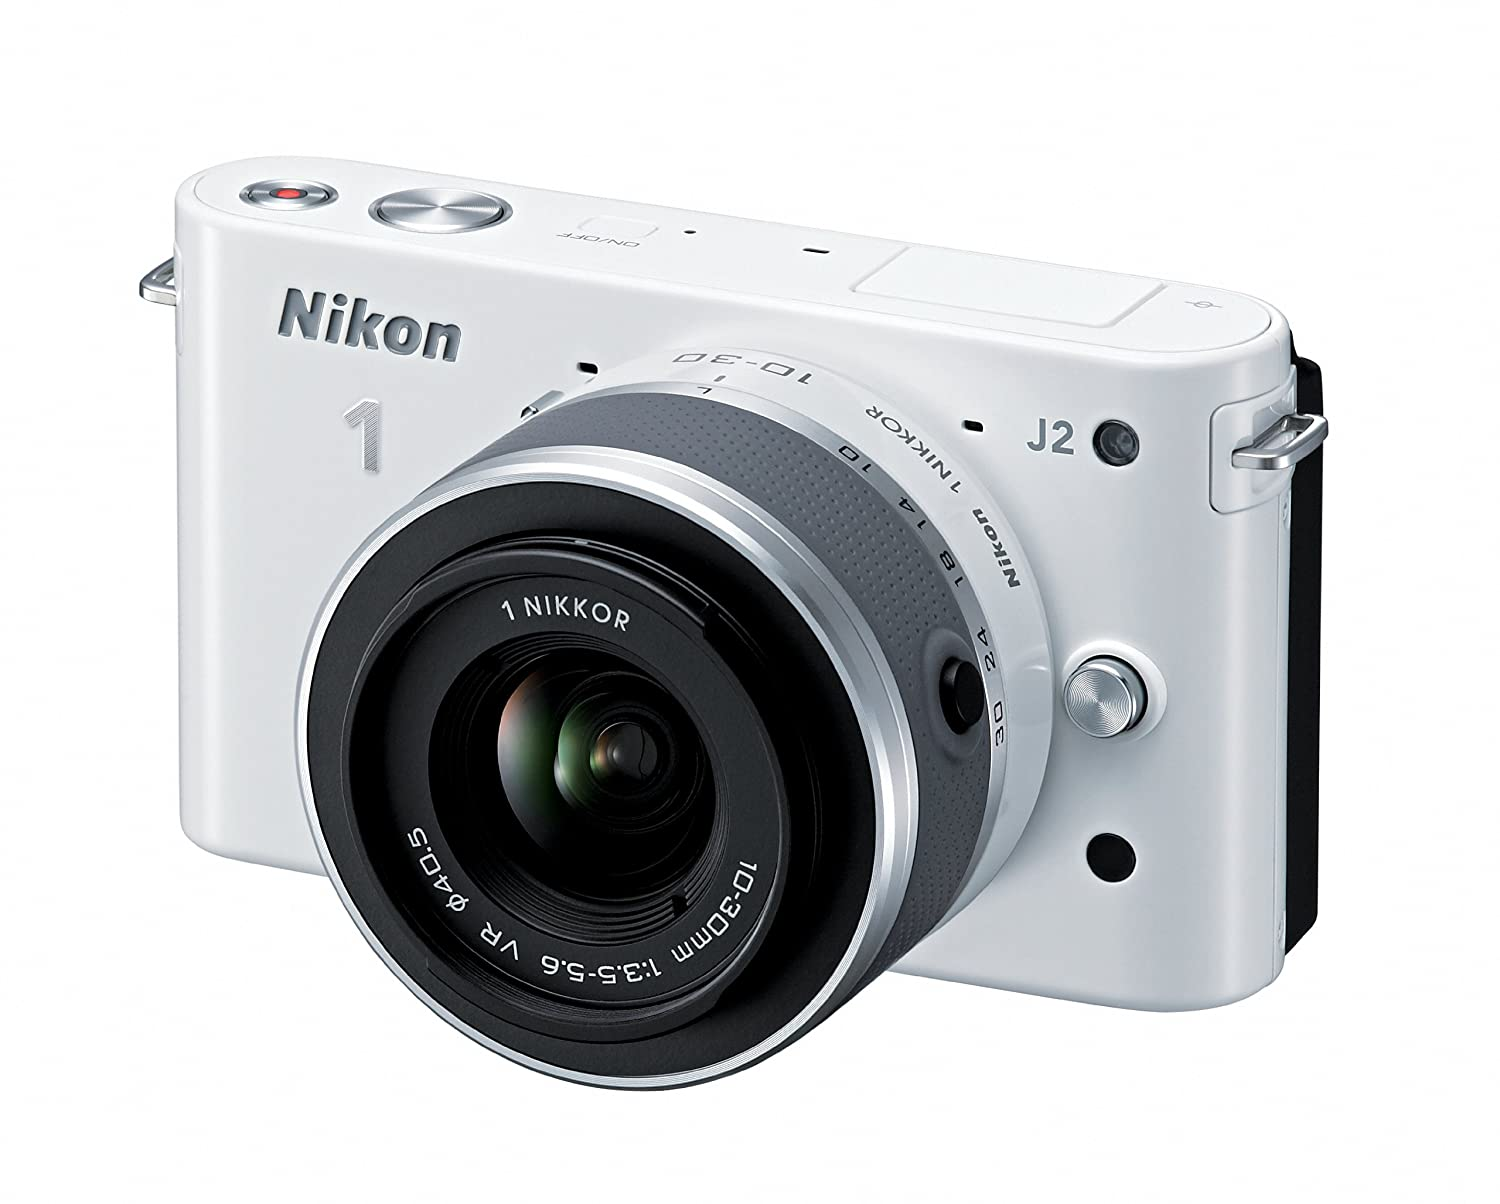 Gold Box Deal of the Day: Save up to 40% on the Nikon 1 J2 Camera and Get a Free Nikon 1 J2 Case and Transcend 8 GB Memory Card $349